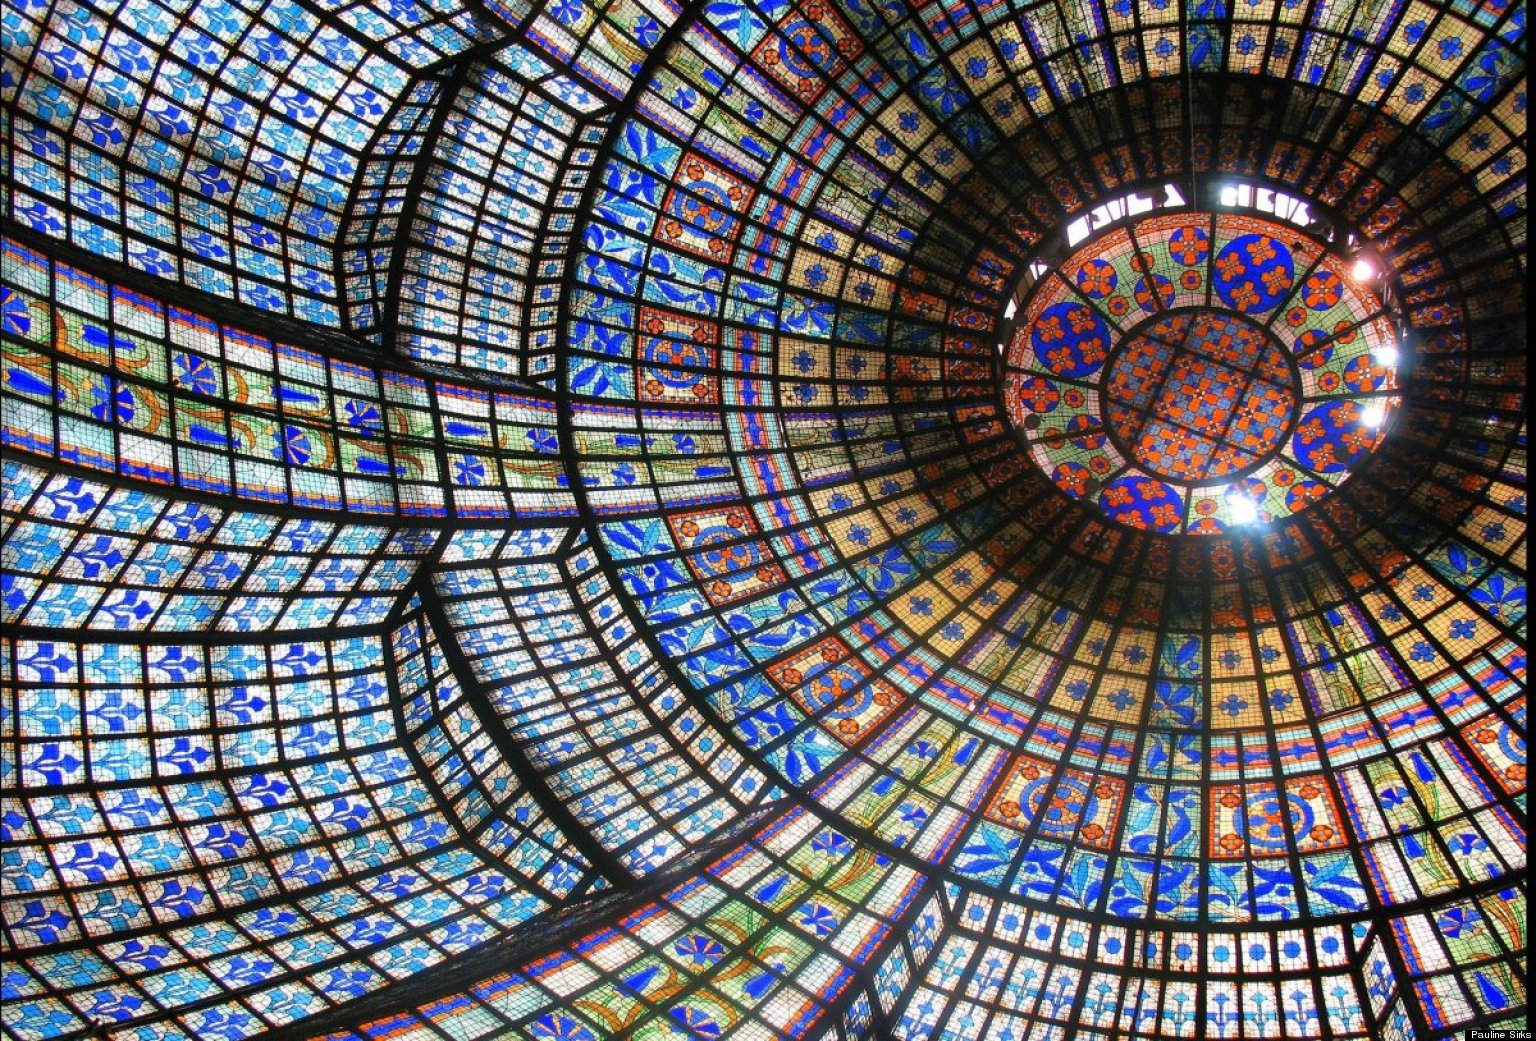 Stained Glass Dome Ceiling in Chicago